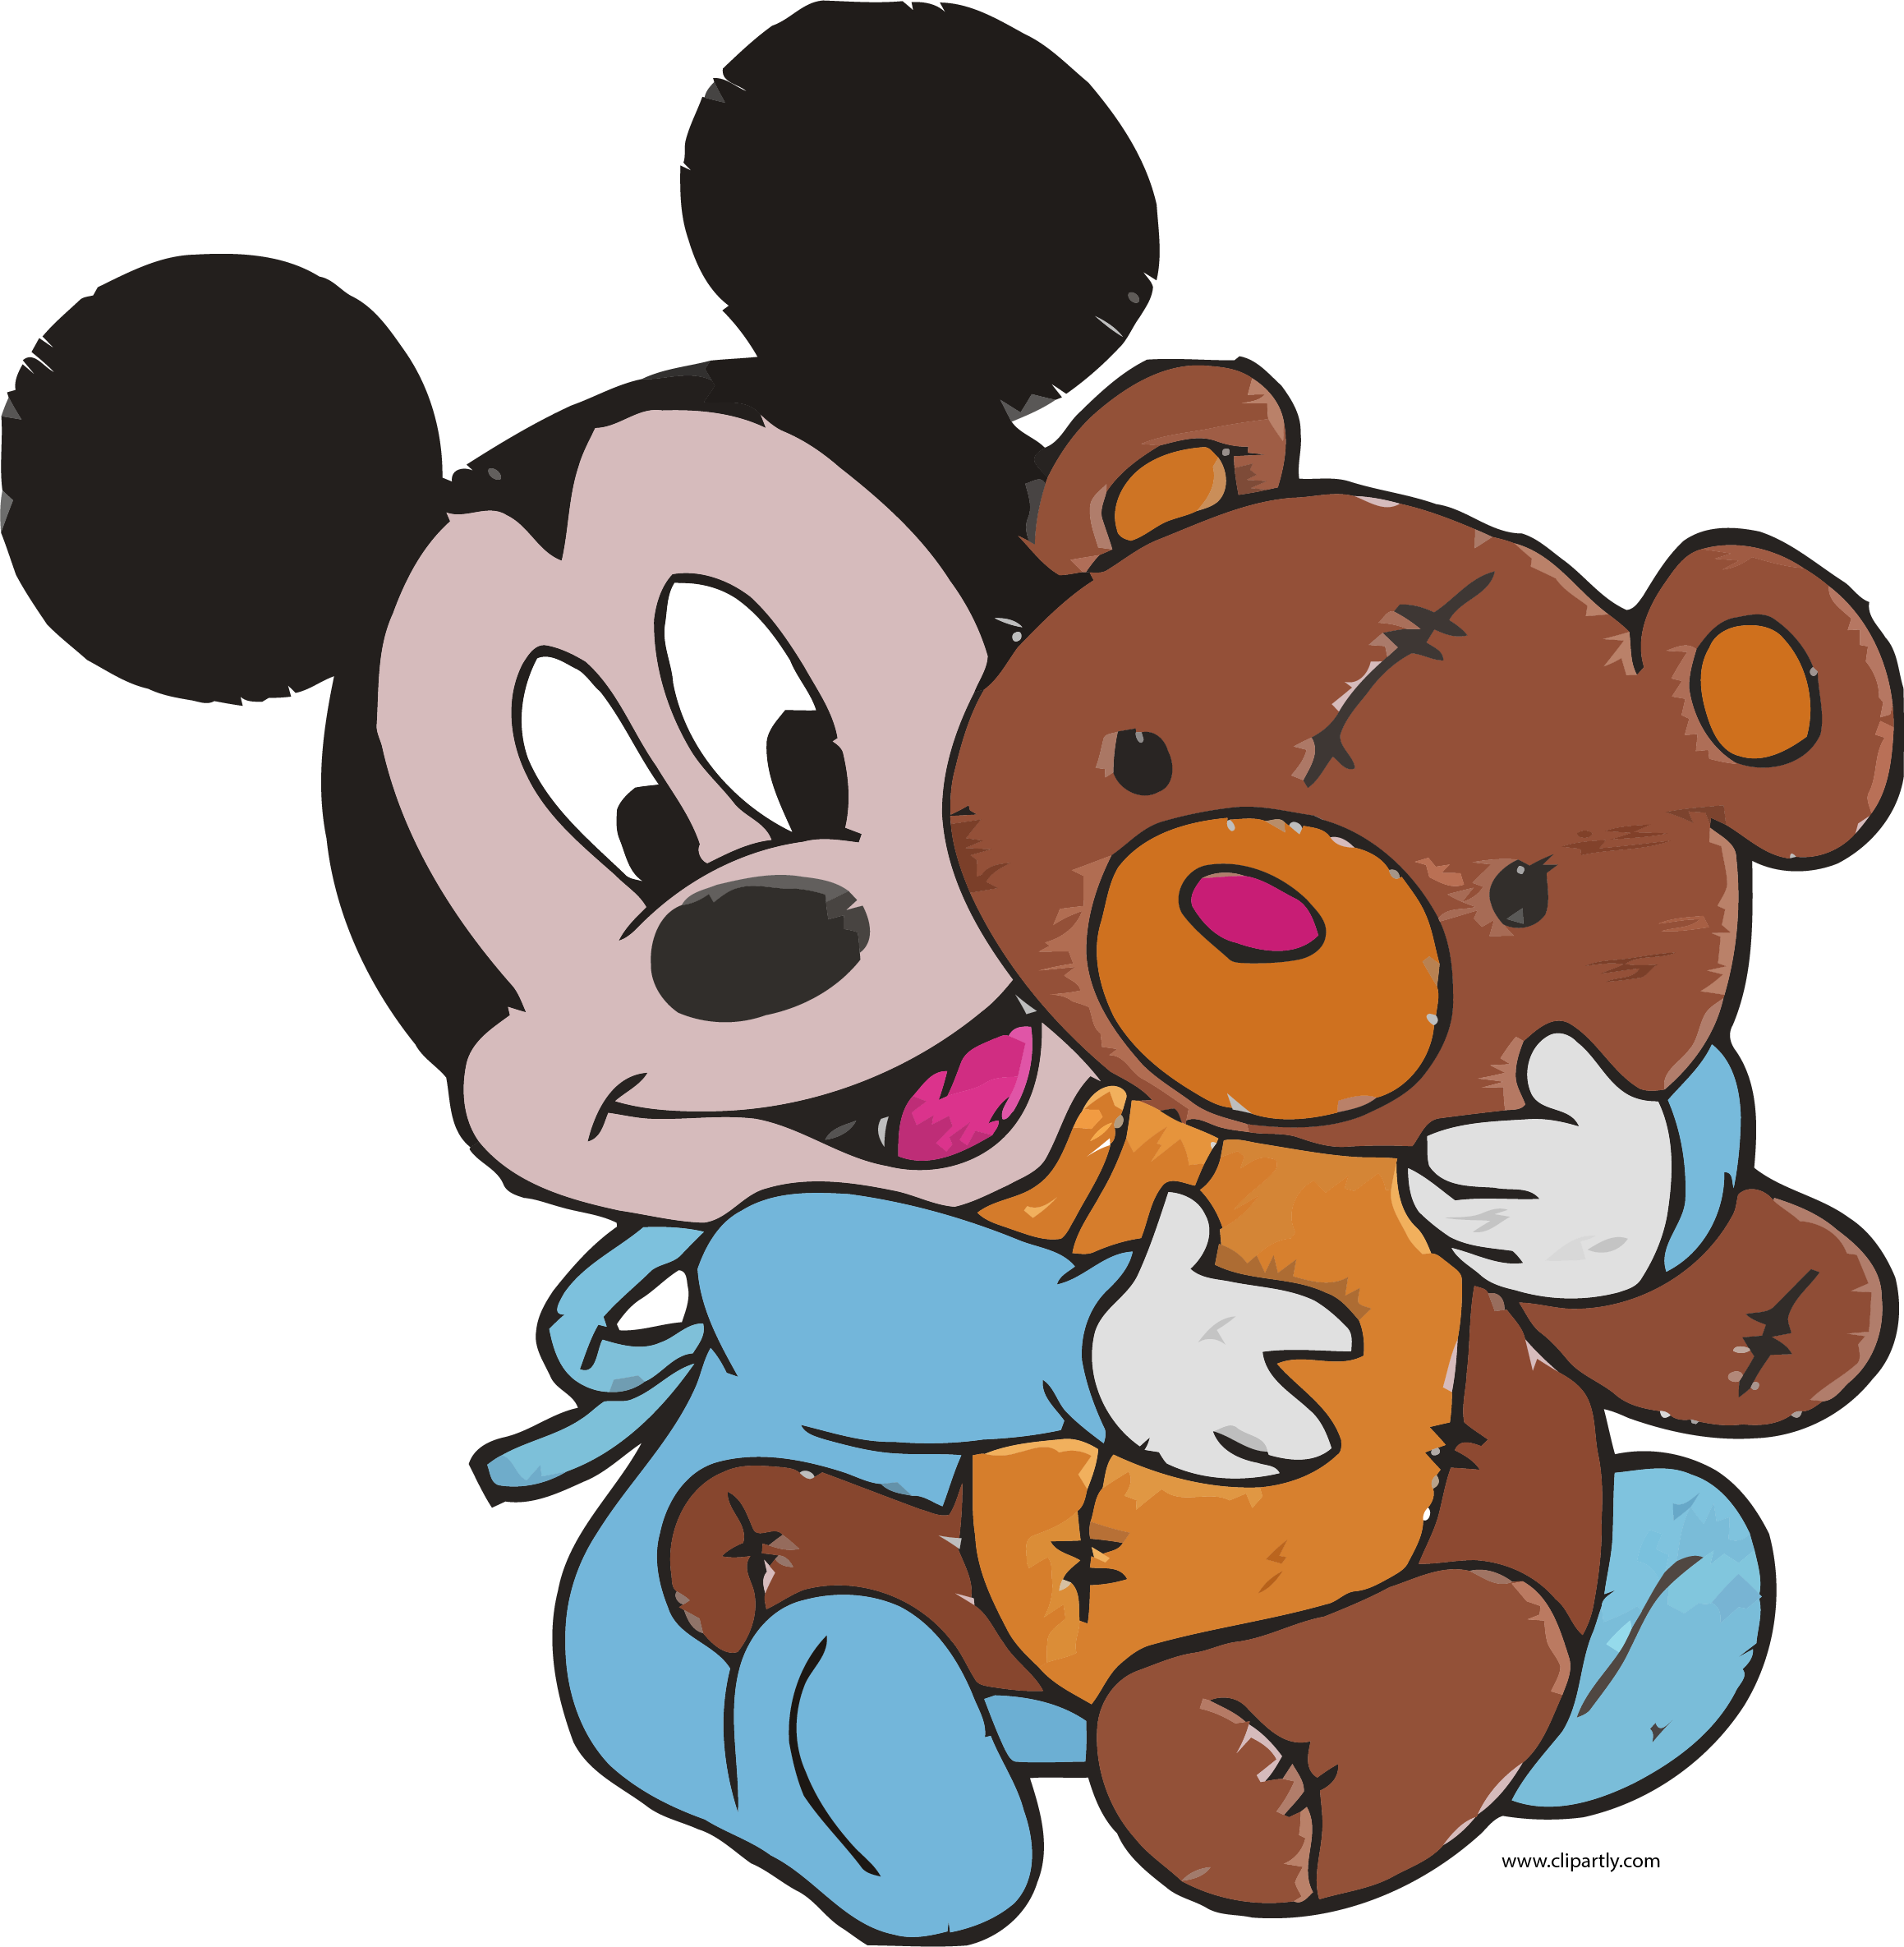 Mickey mouse baseball embroidery design clipart png library Mickey Mouse Design - Design and House Design Propublicobono.Org png library